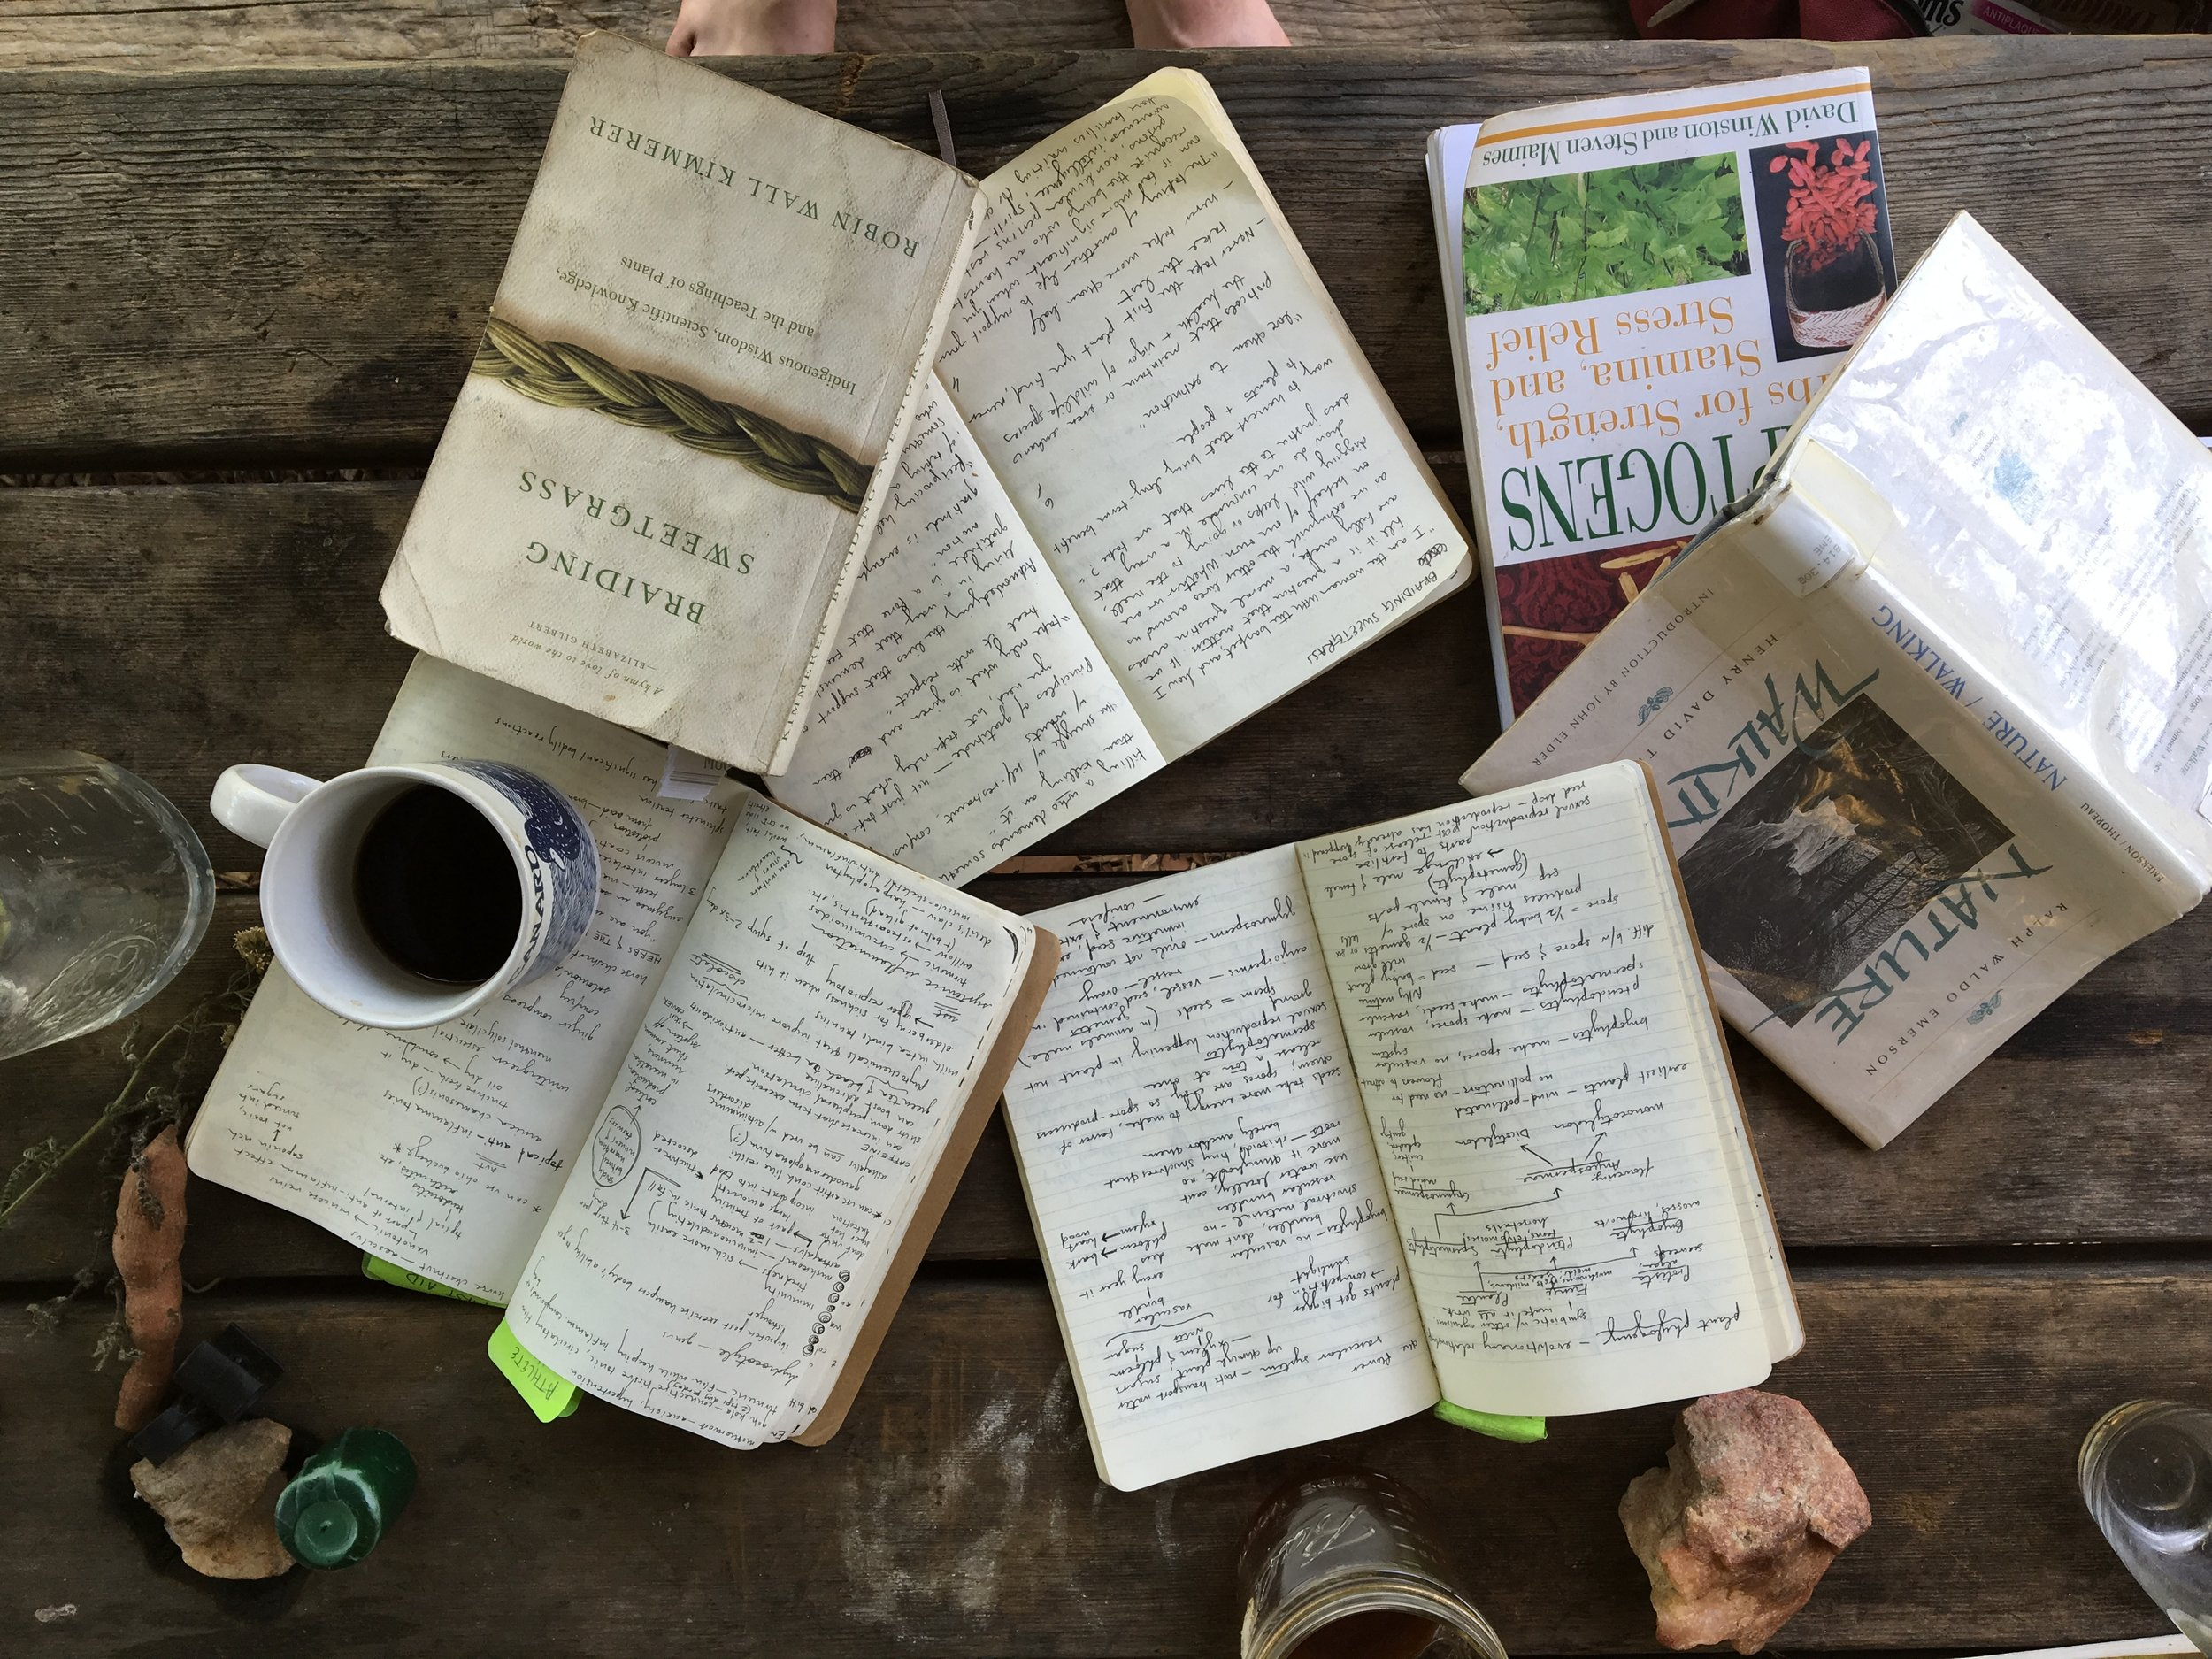 Picnic table prep for a week of teaching at the Blue Ridge School of Herbal Medicine and the Firefly Gathering, North Carolina summer 2016